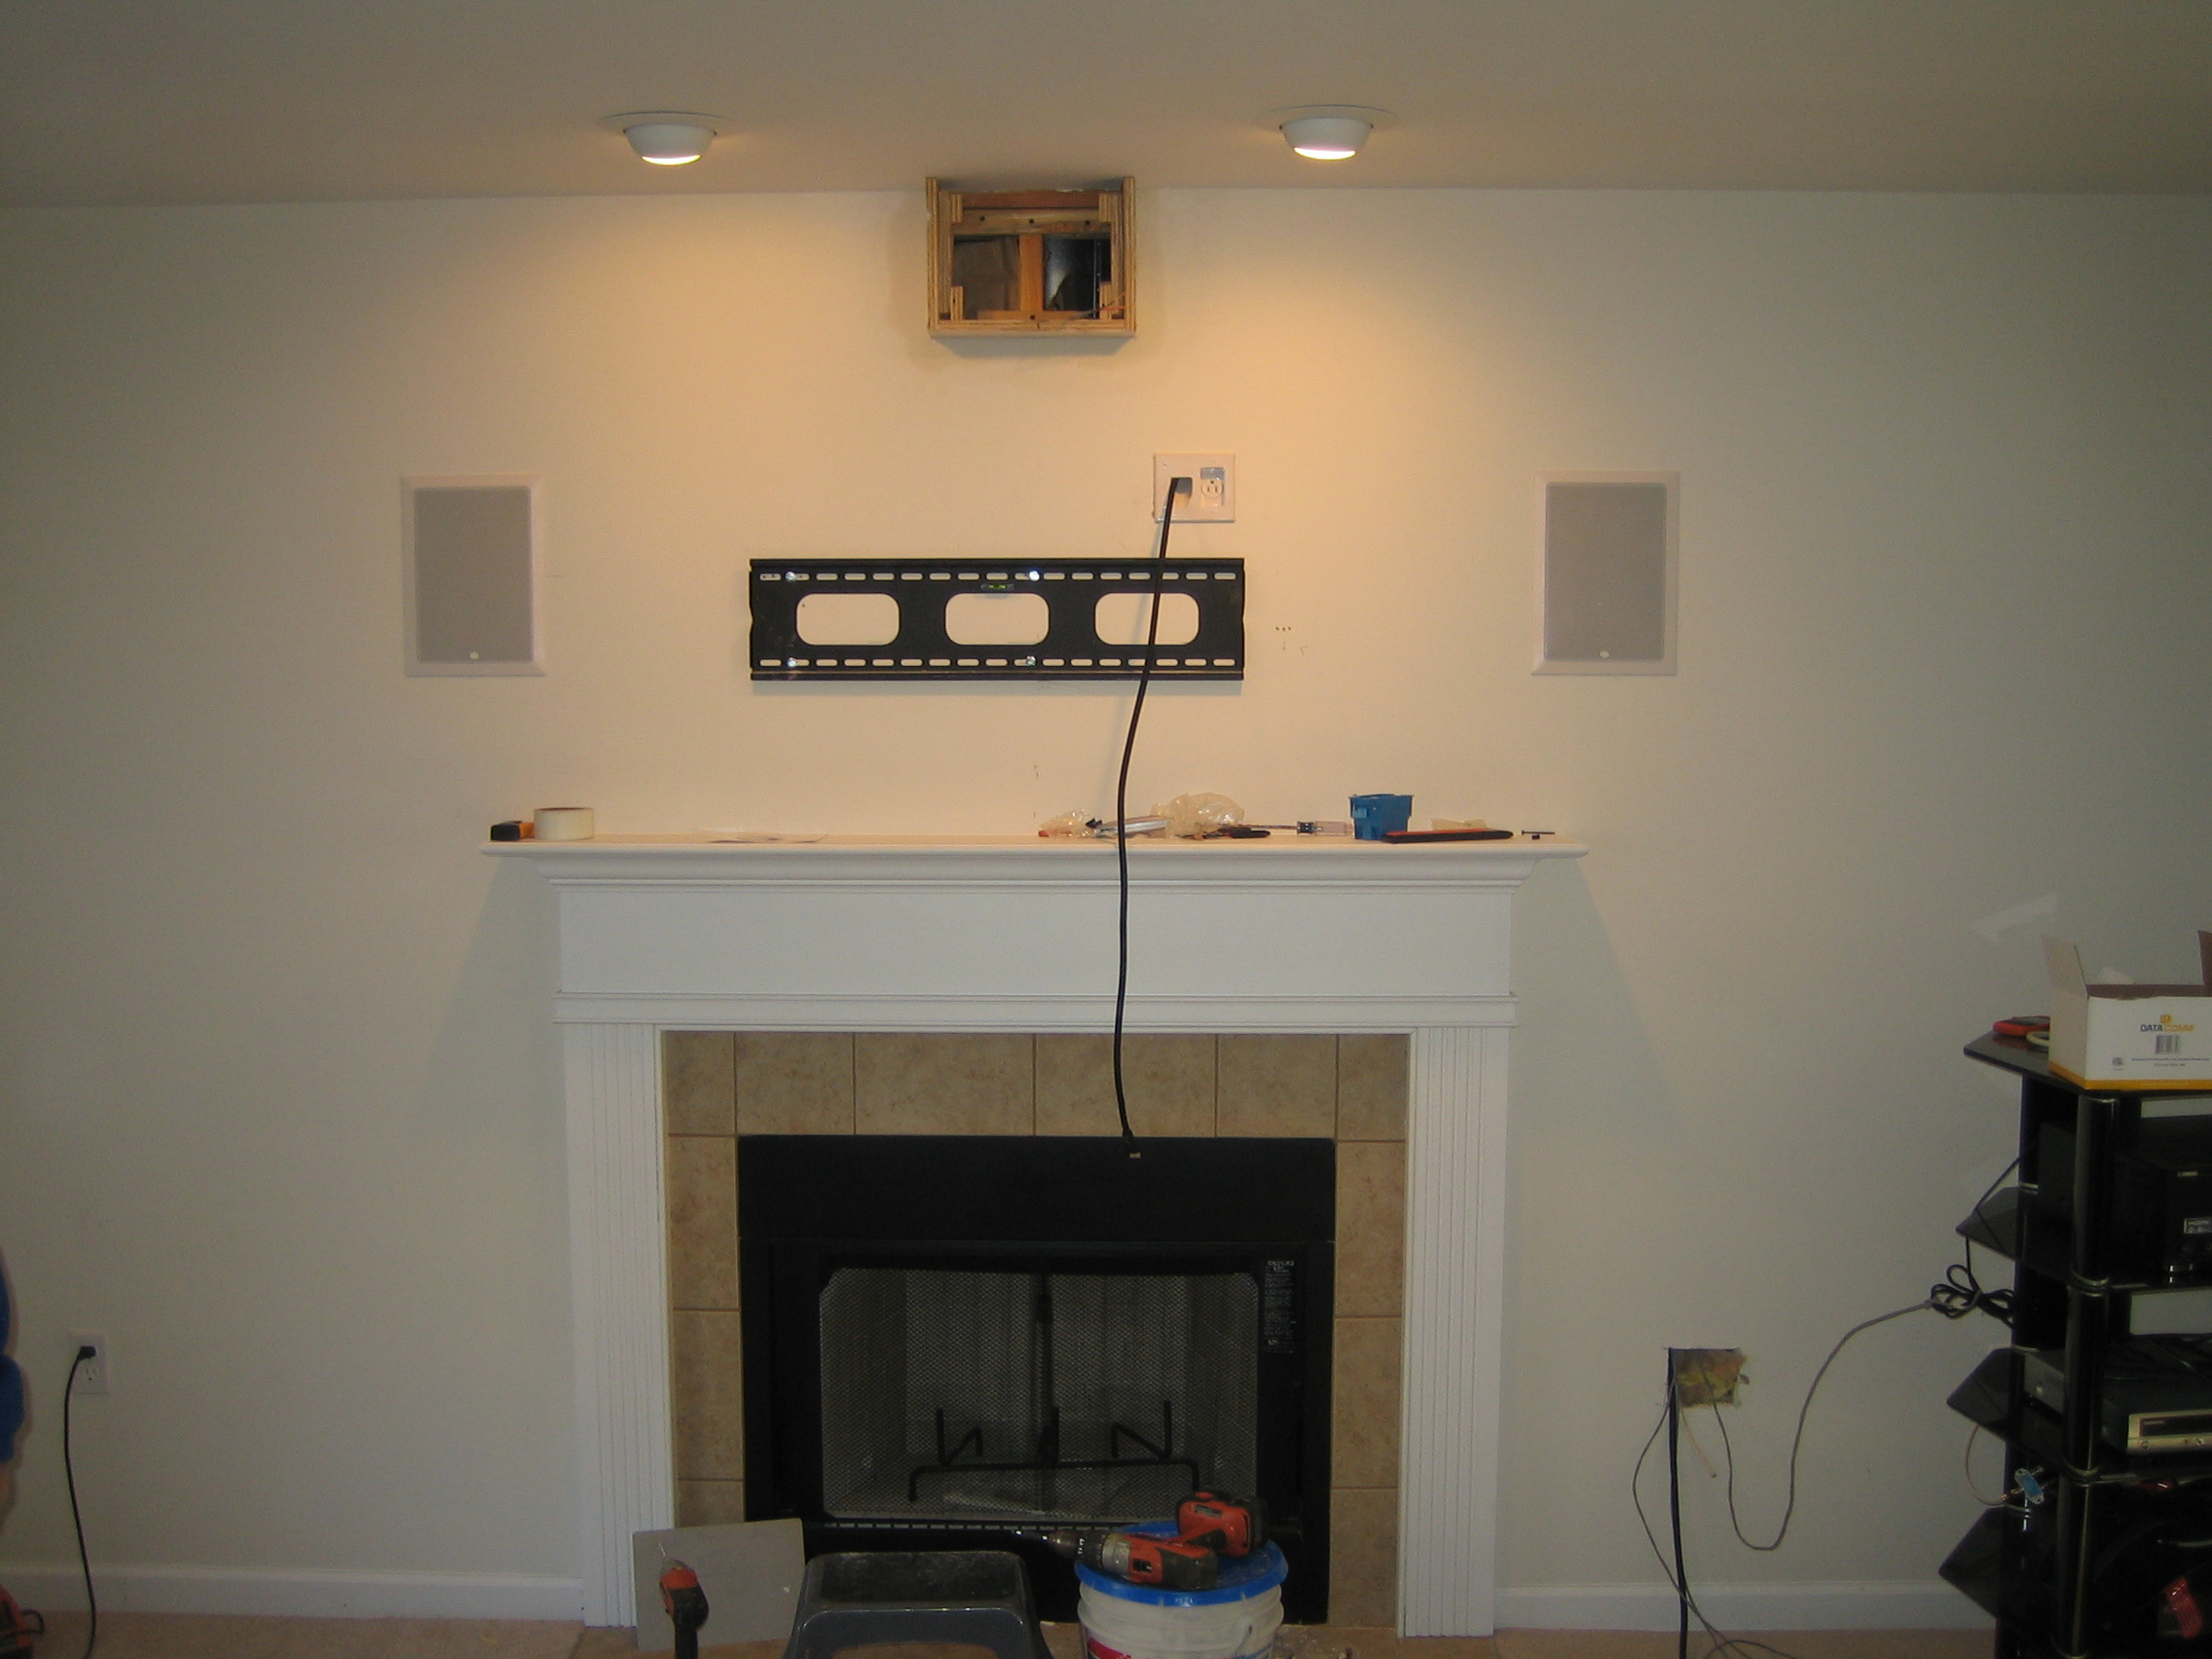 Norwalk ct tv mounted over fireplace with all tv over fireplace hide wires dolgular how to hide wires for wall mounted tv over fireplace uk best how to hide cords on wall mounted tv above fireplace how to hide wires for a